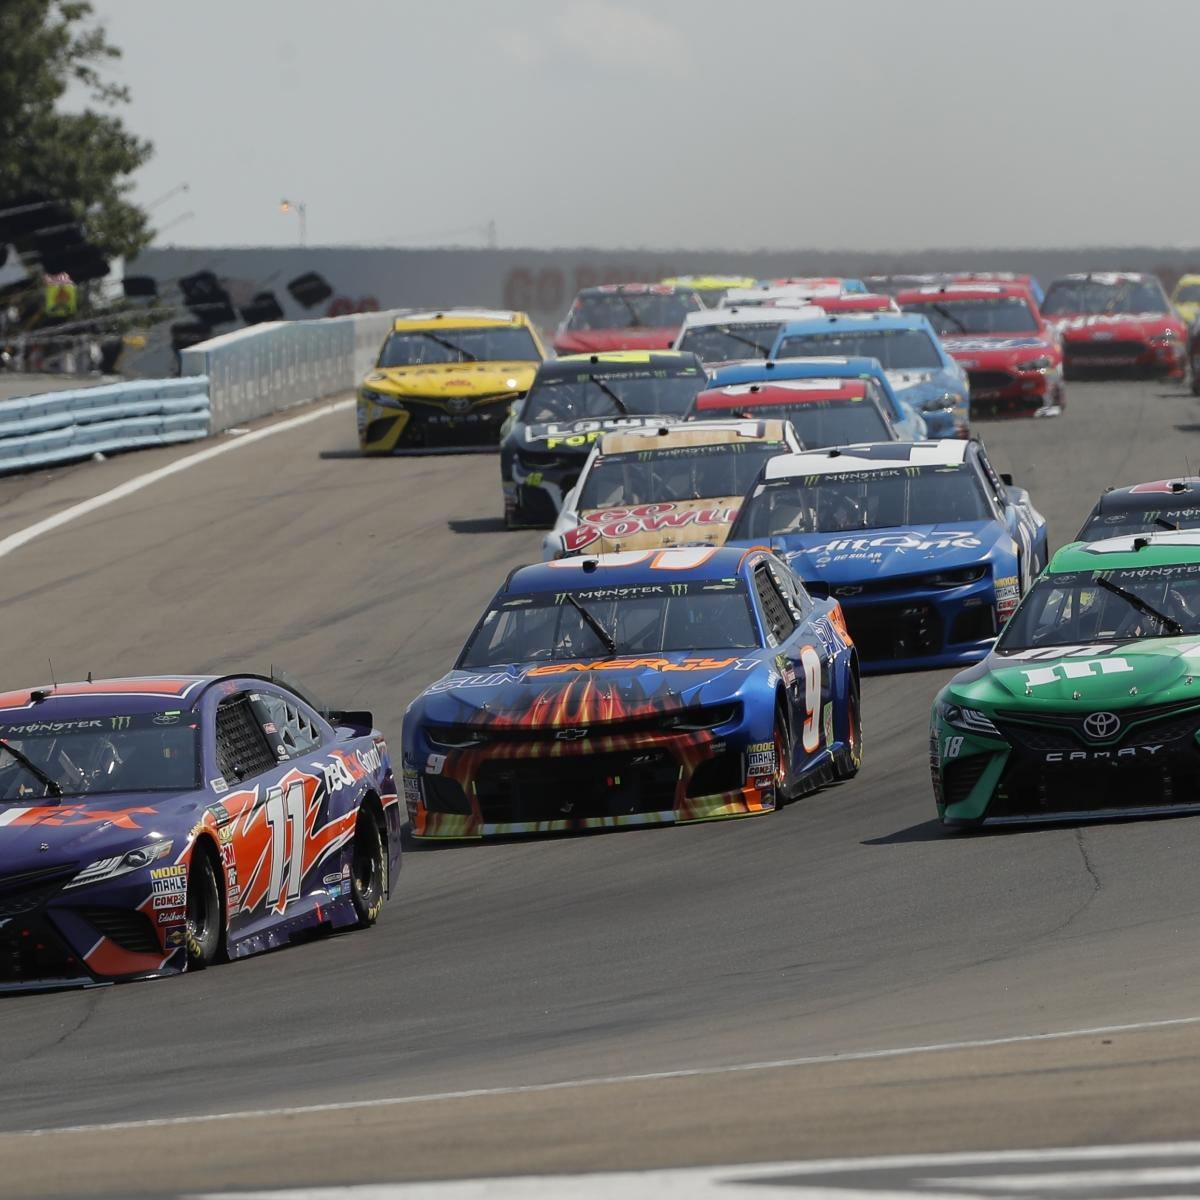 NASCAR at Michigan 2018: Start Time, Ticket Info, Lineup, TV Schedule and More